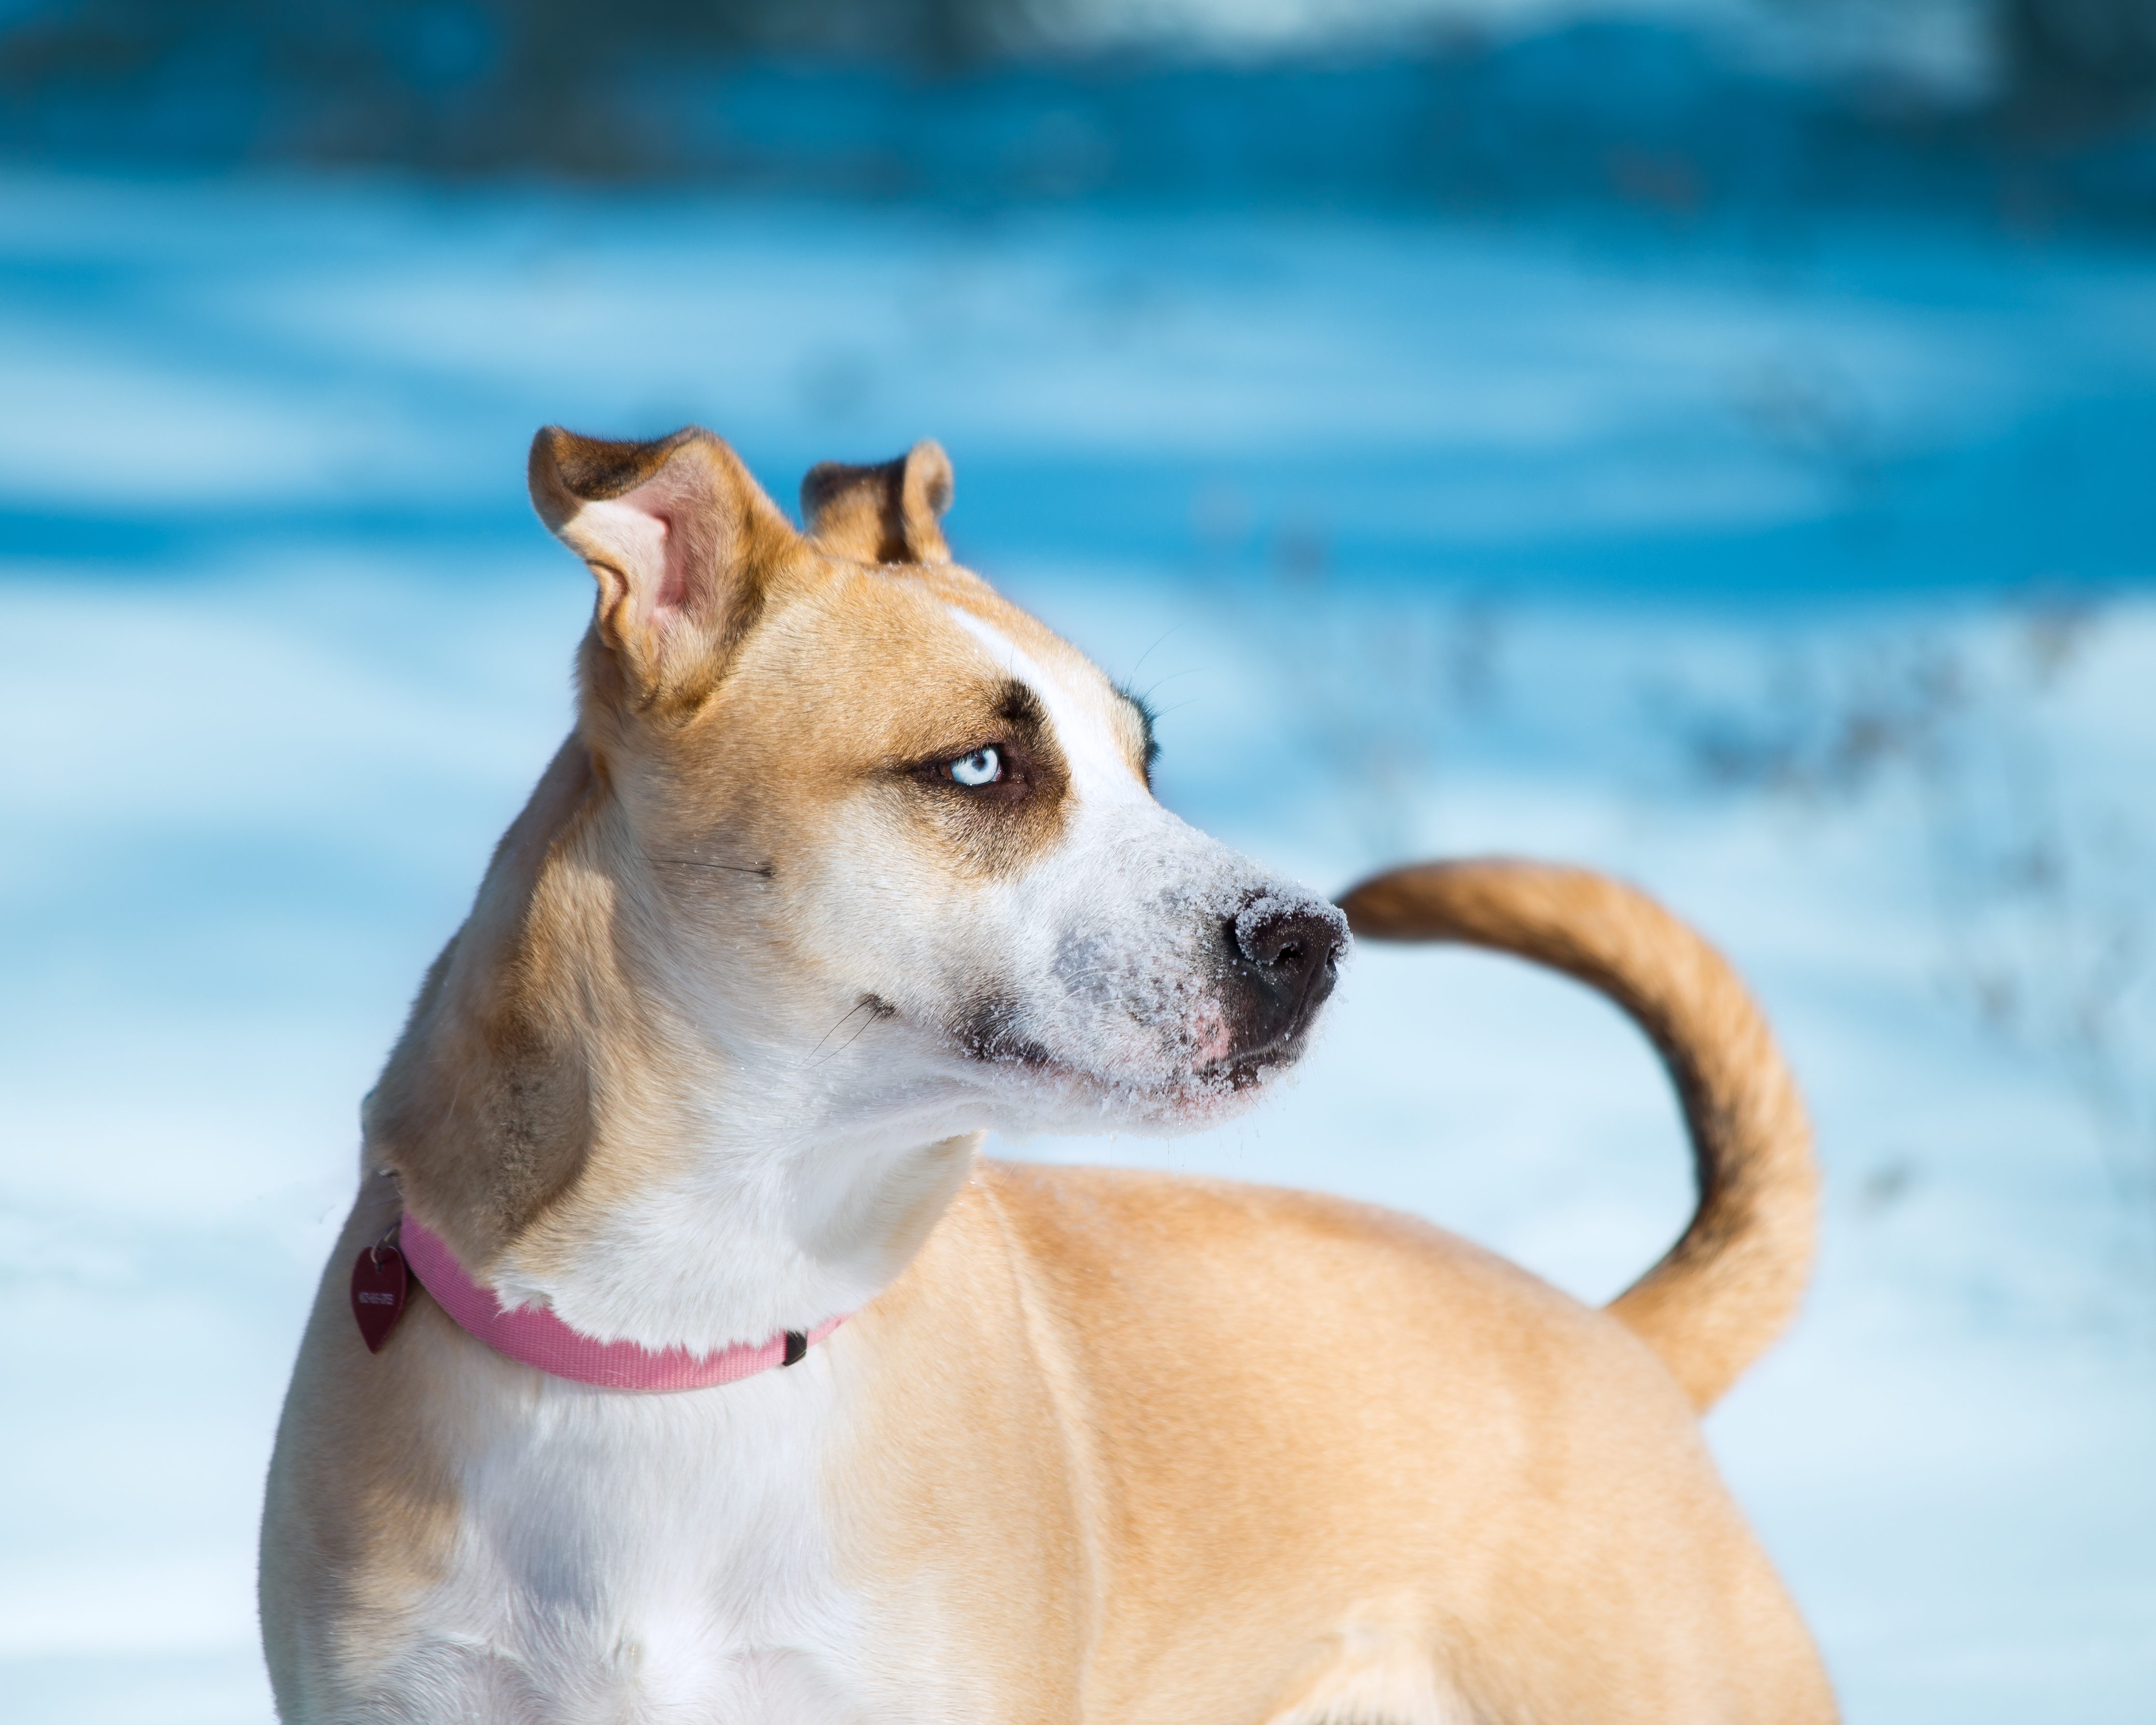 Dog for adoption - Zara, a Pit Bull Terrier Mix in Calgary